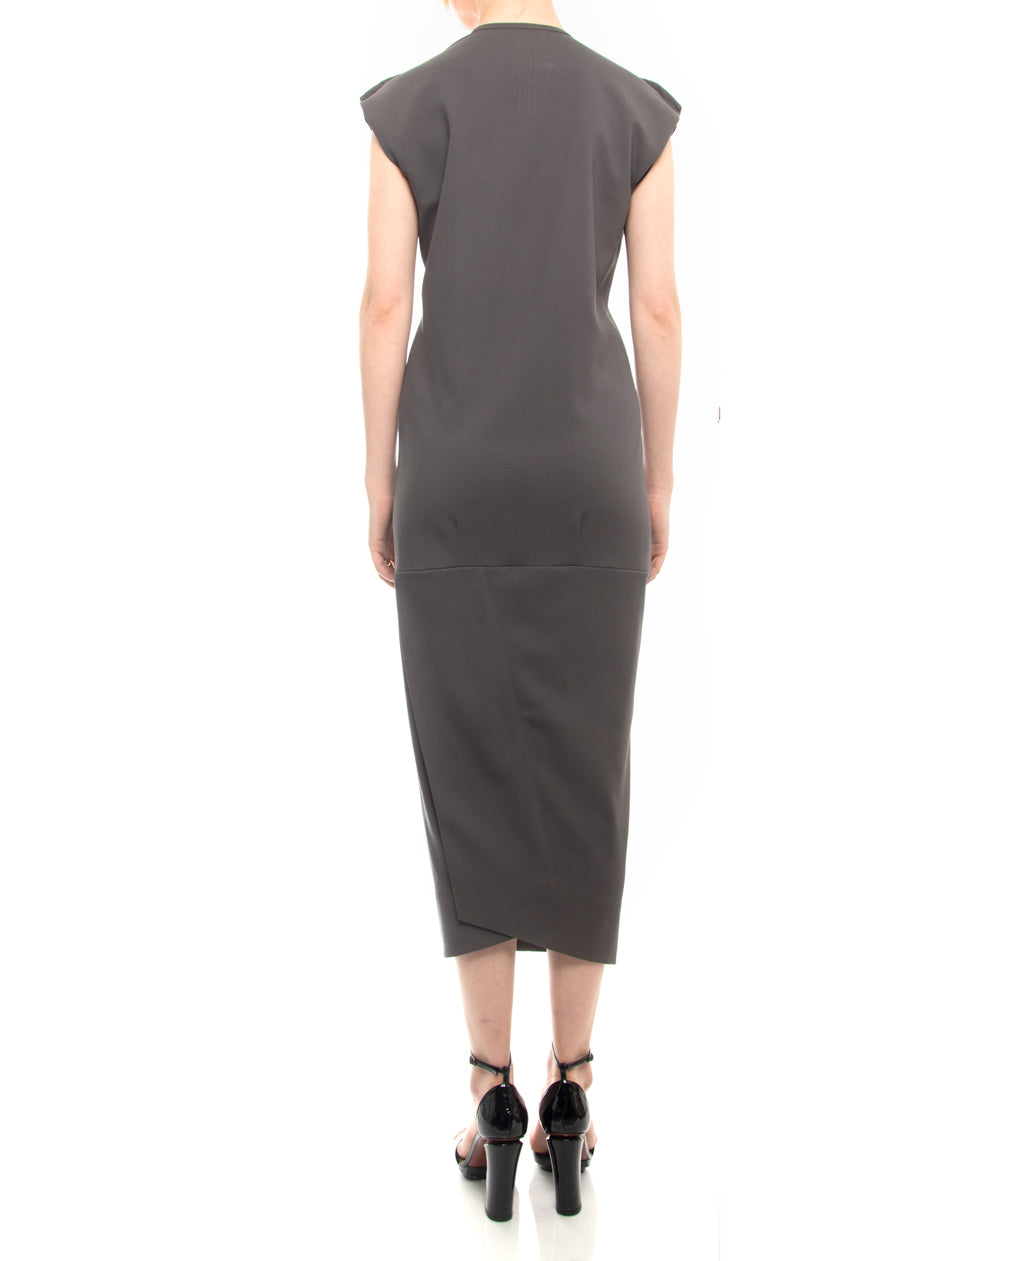 Rick Owens Slate Grey Island SS13 Pillar Midi Dress - USA 2